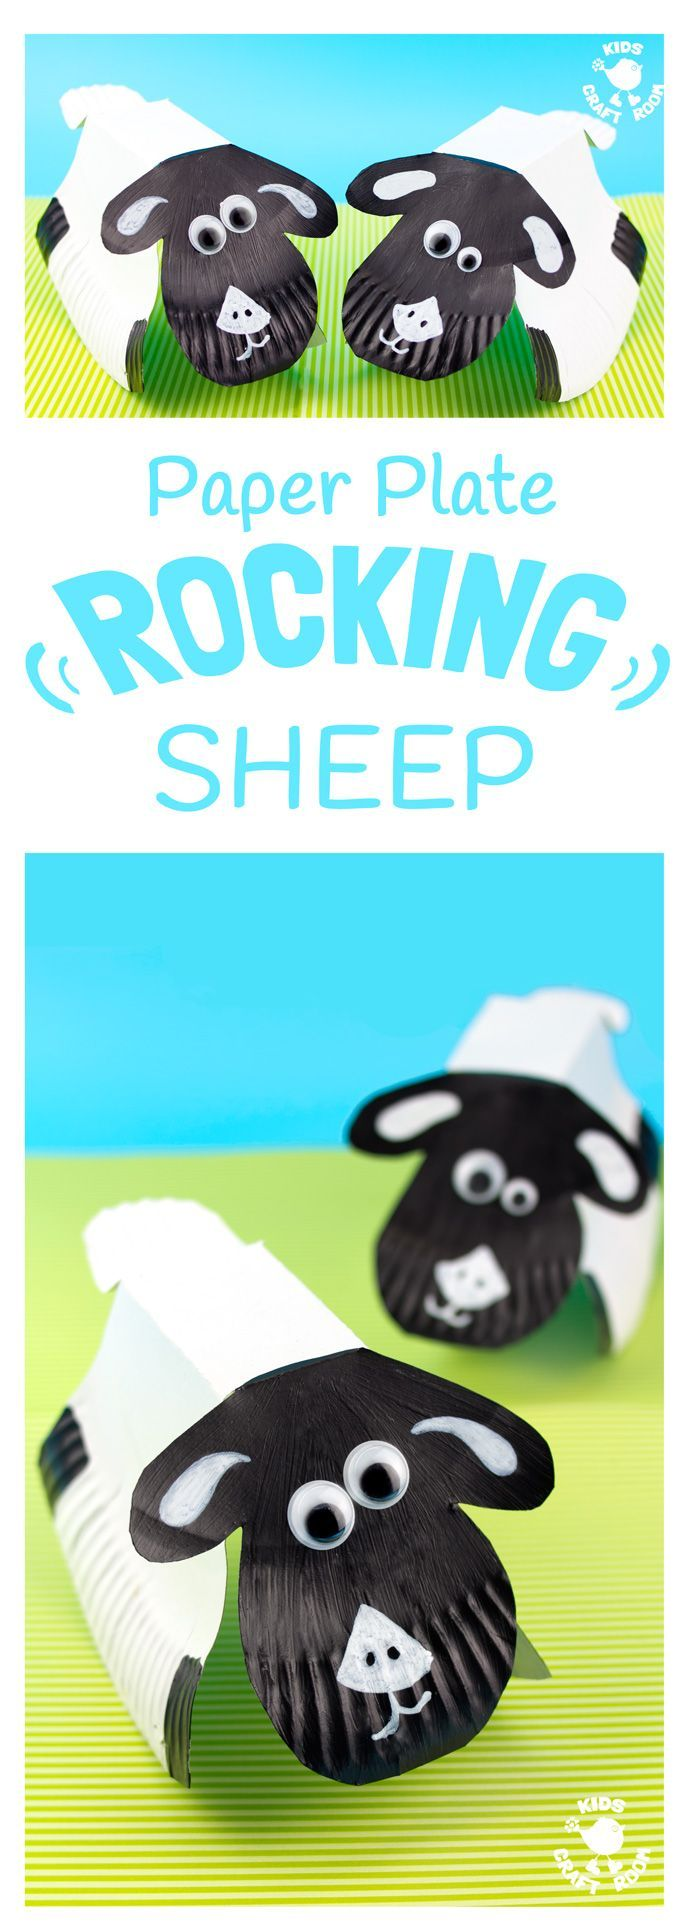 cardboard sheep template - rocking paper plate sheep craft spring much and sheep